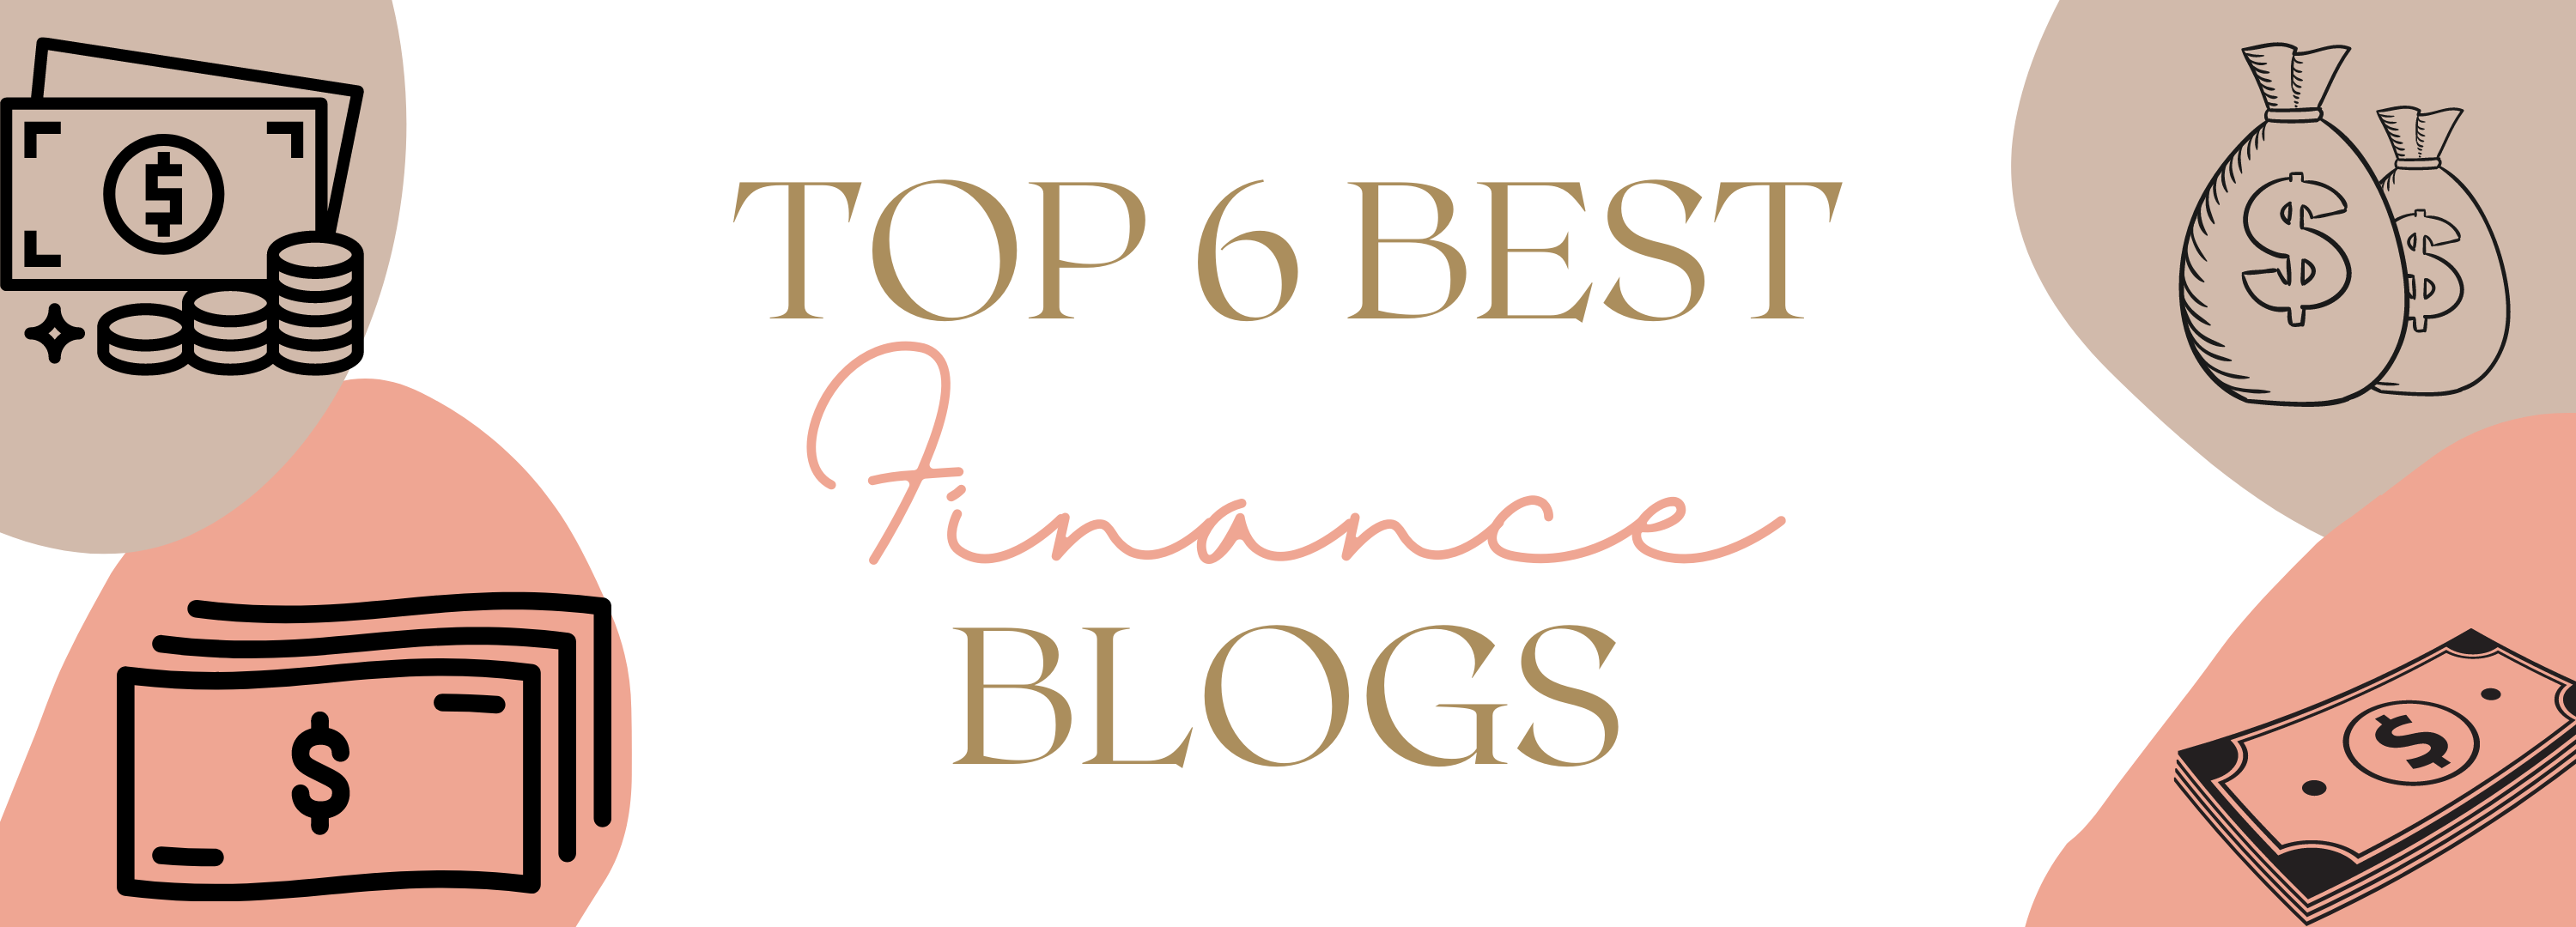 Top 6 Best Finance Blogs For Content Writers to Read